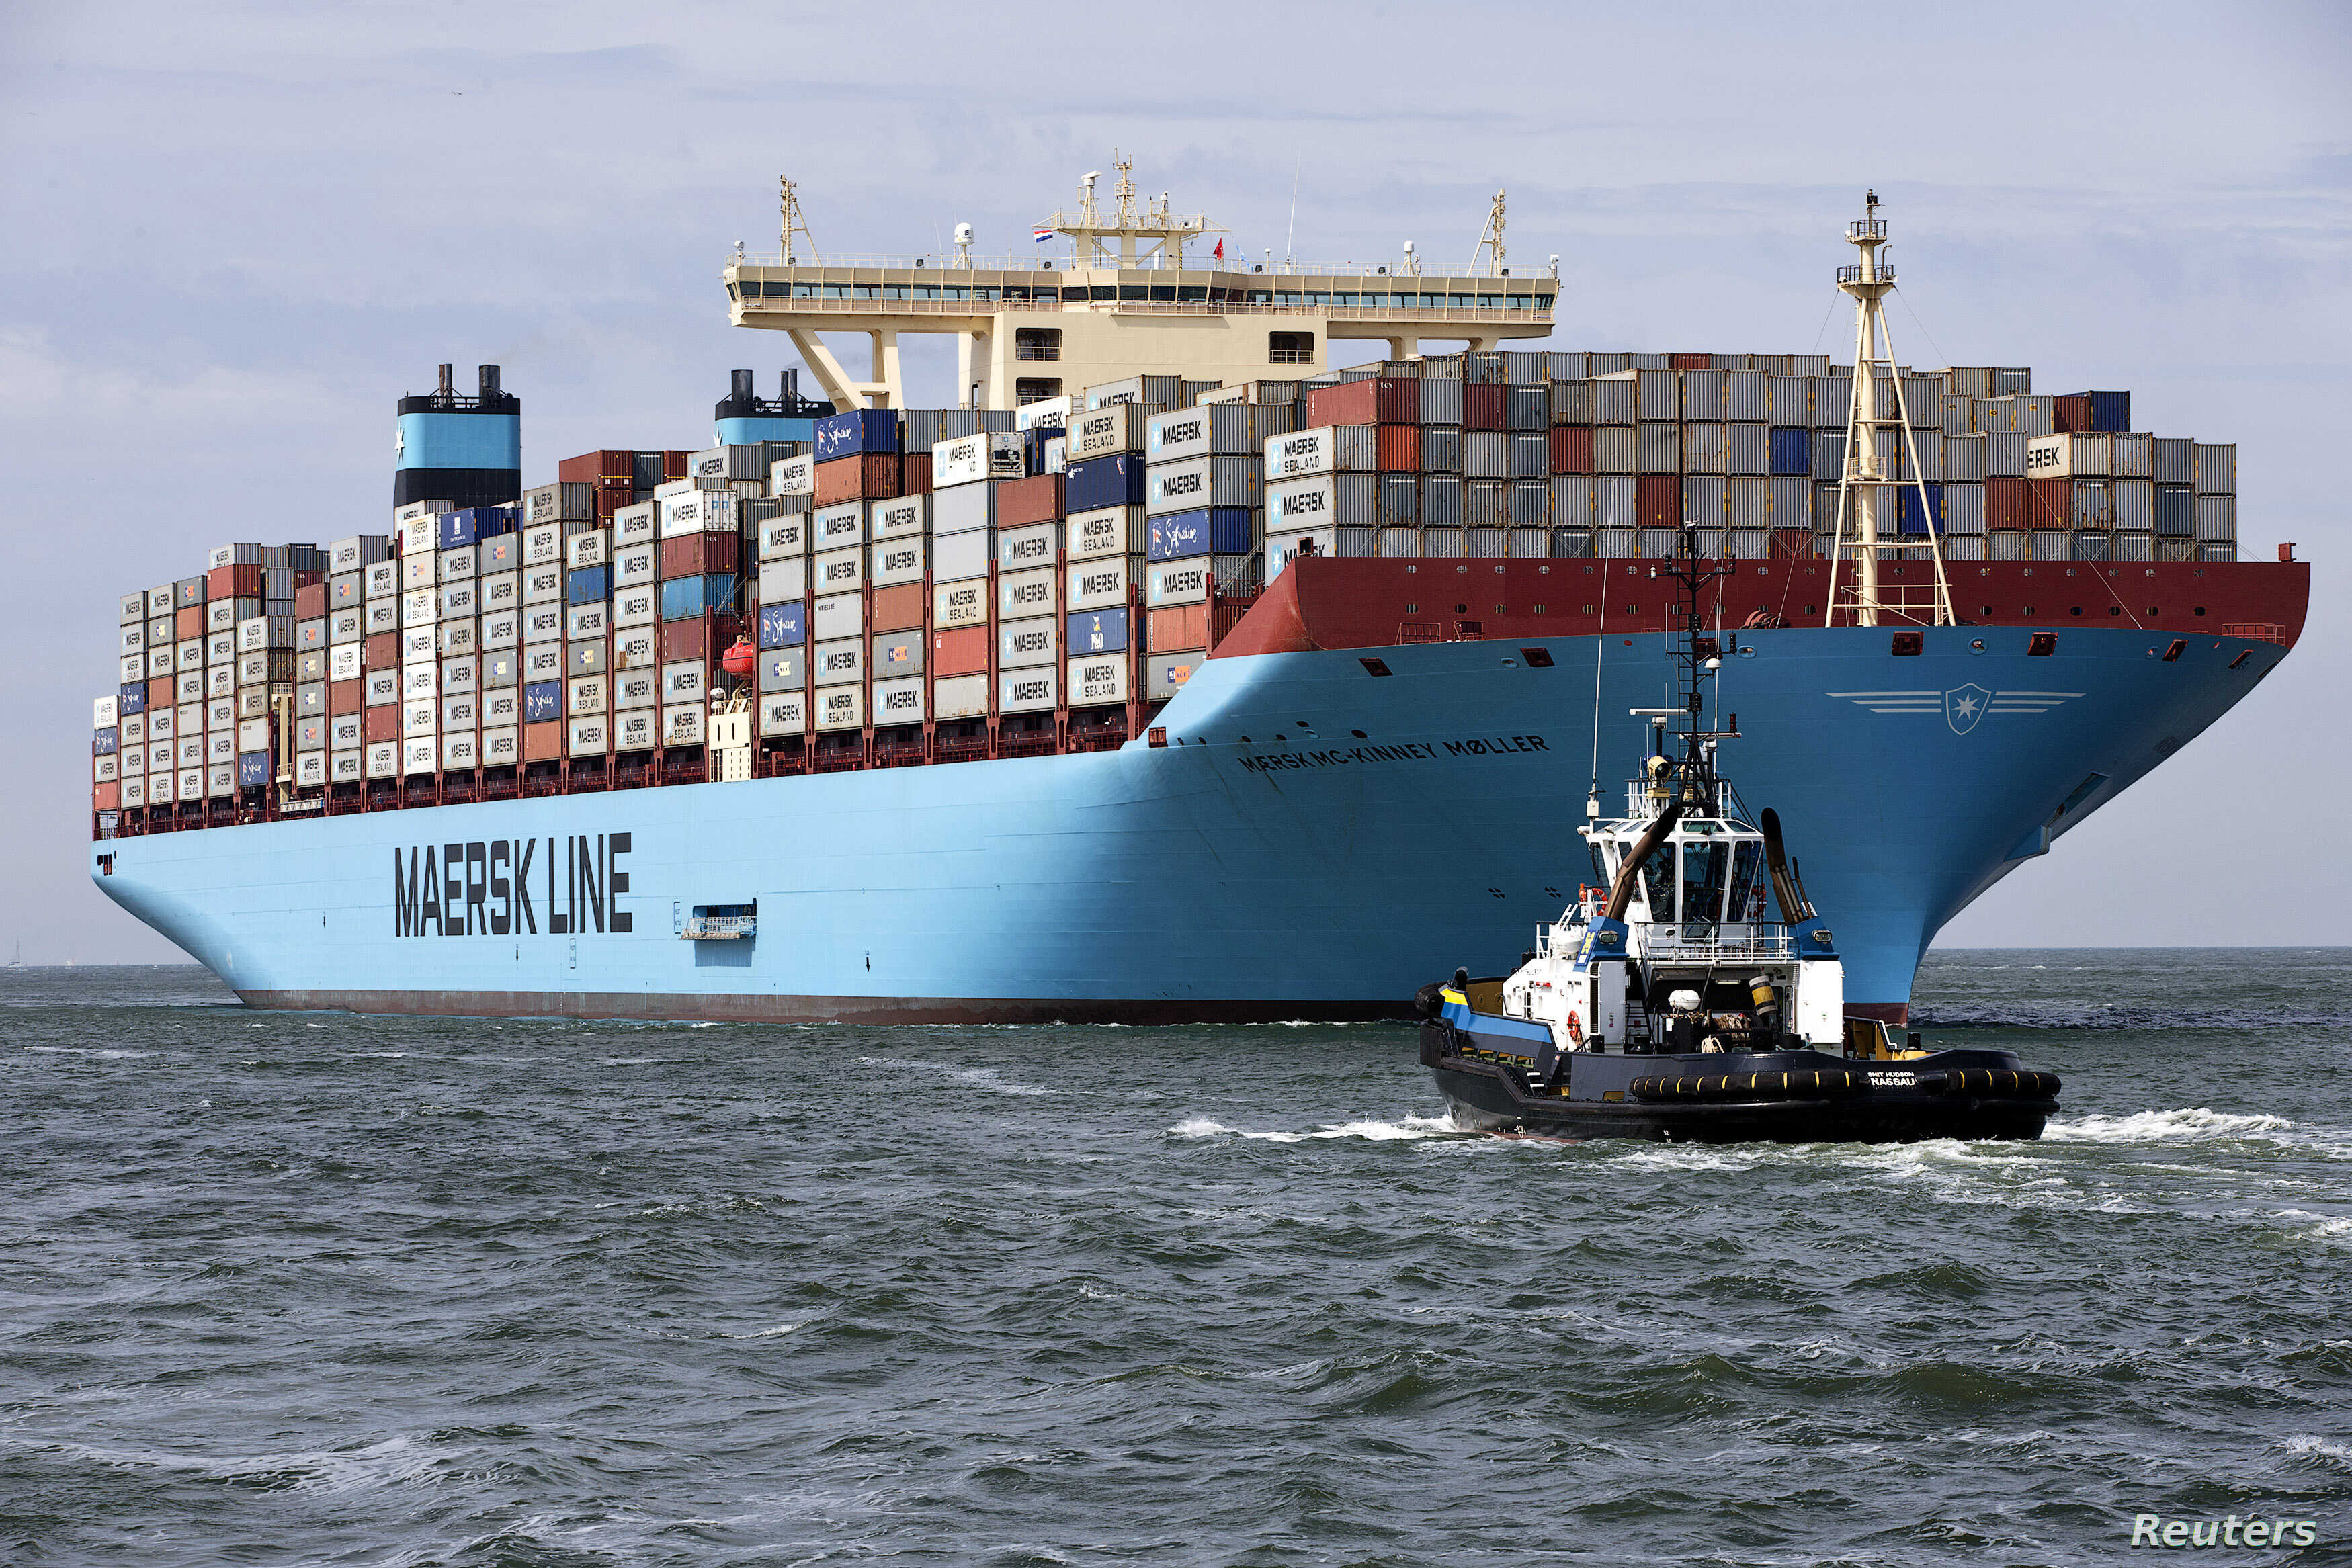 World's Biggest Container Shipping Line Operating Close to Normal After Cyberattack | Voice of America - English